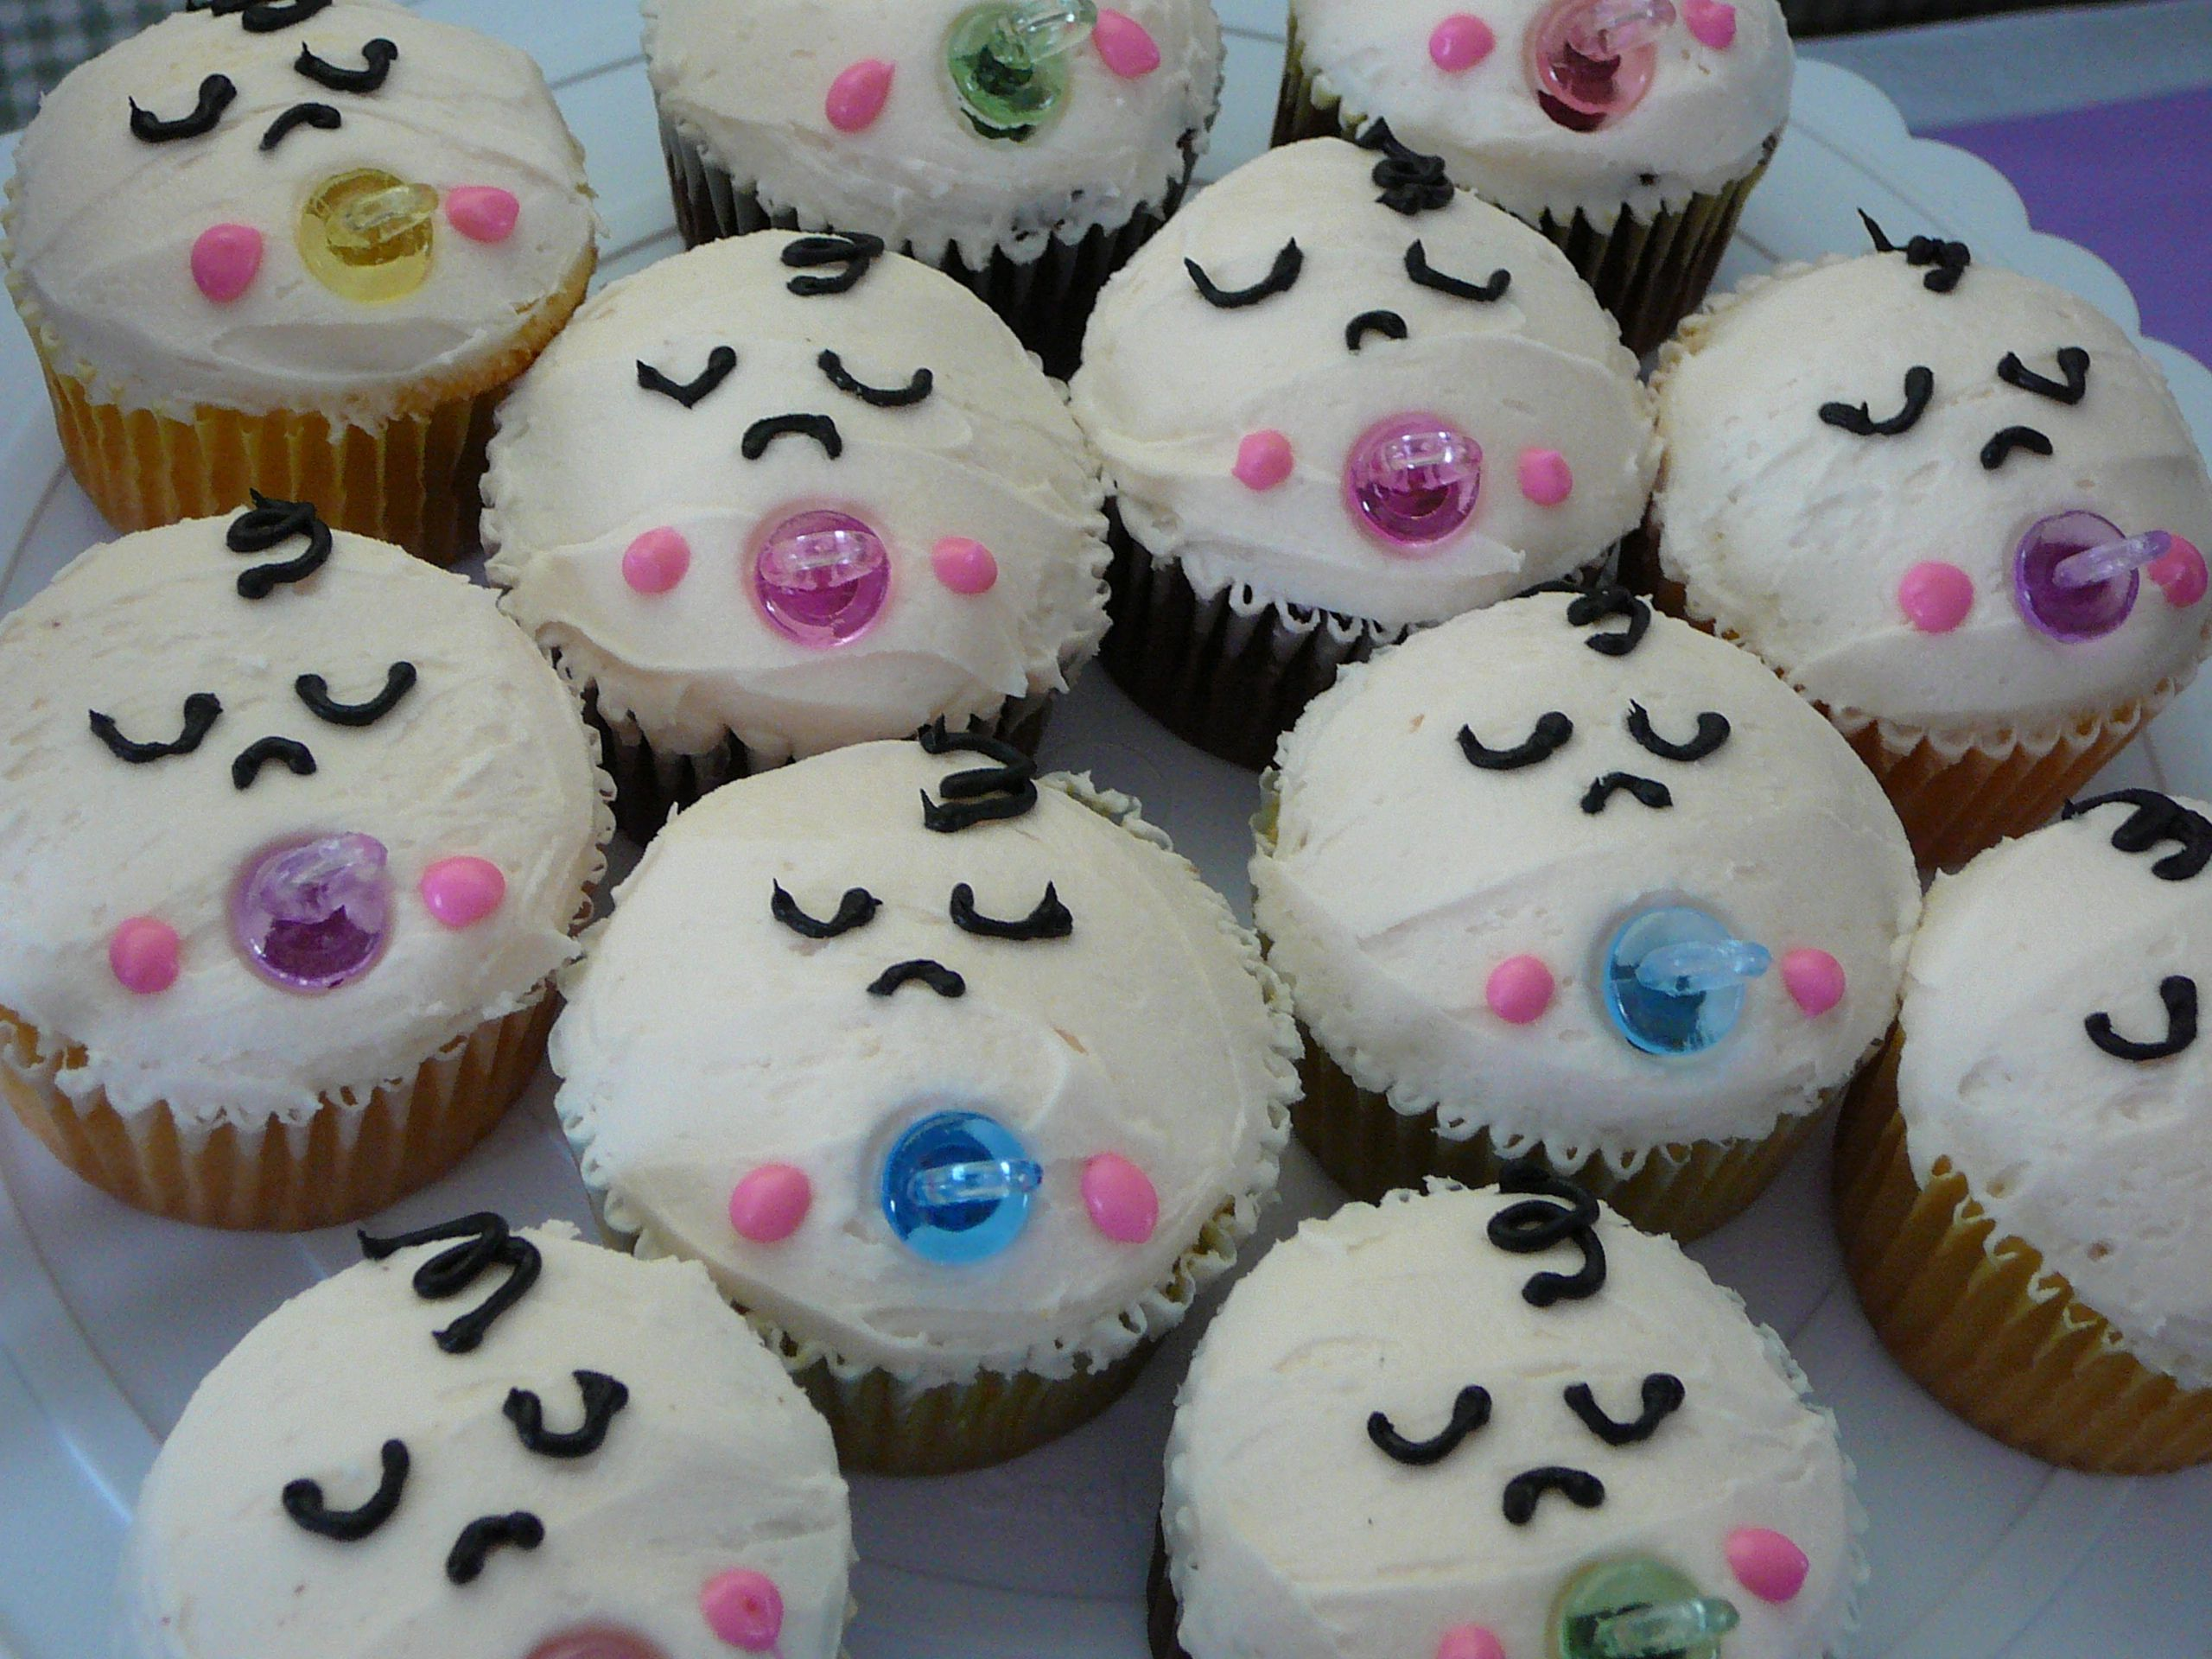 Cute Baby Shower Decorations Easy And Simple Baby Shower Cake Ideas Easy Baby Shower Cupcakes